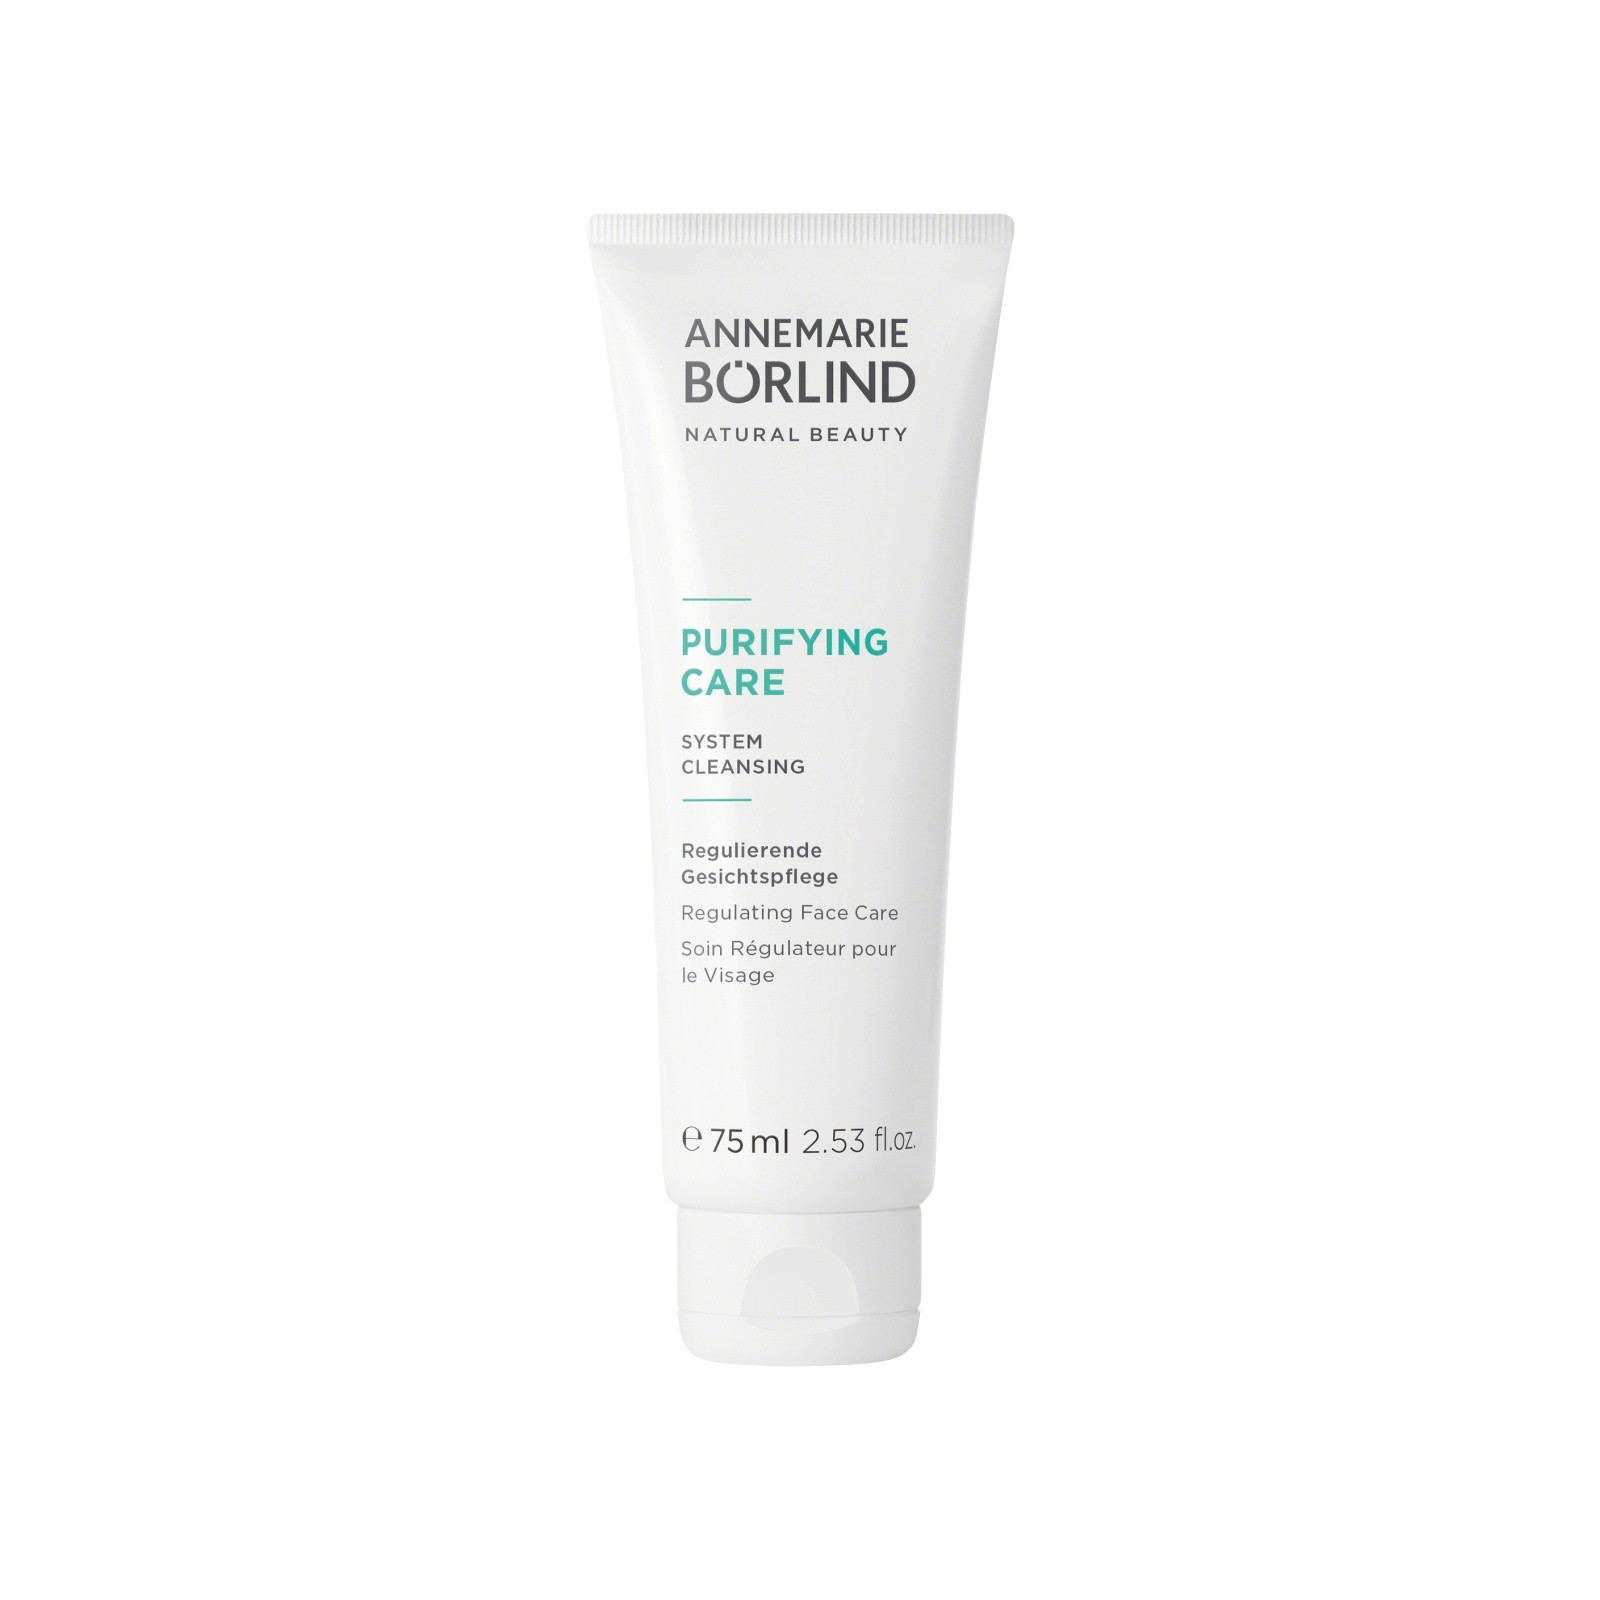 AnneMarie BÖRLING Purifying Care, Crème pour le visage - tube 75 ml